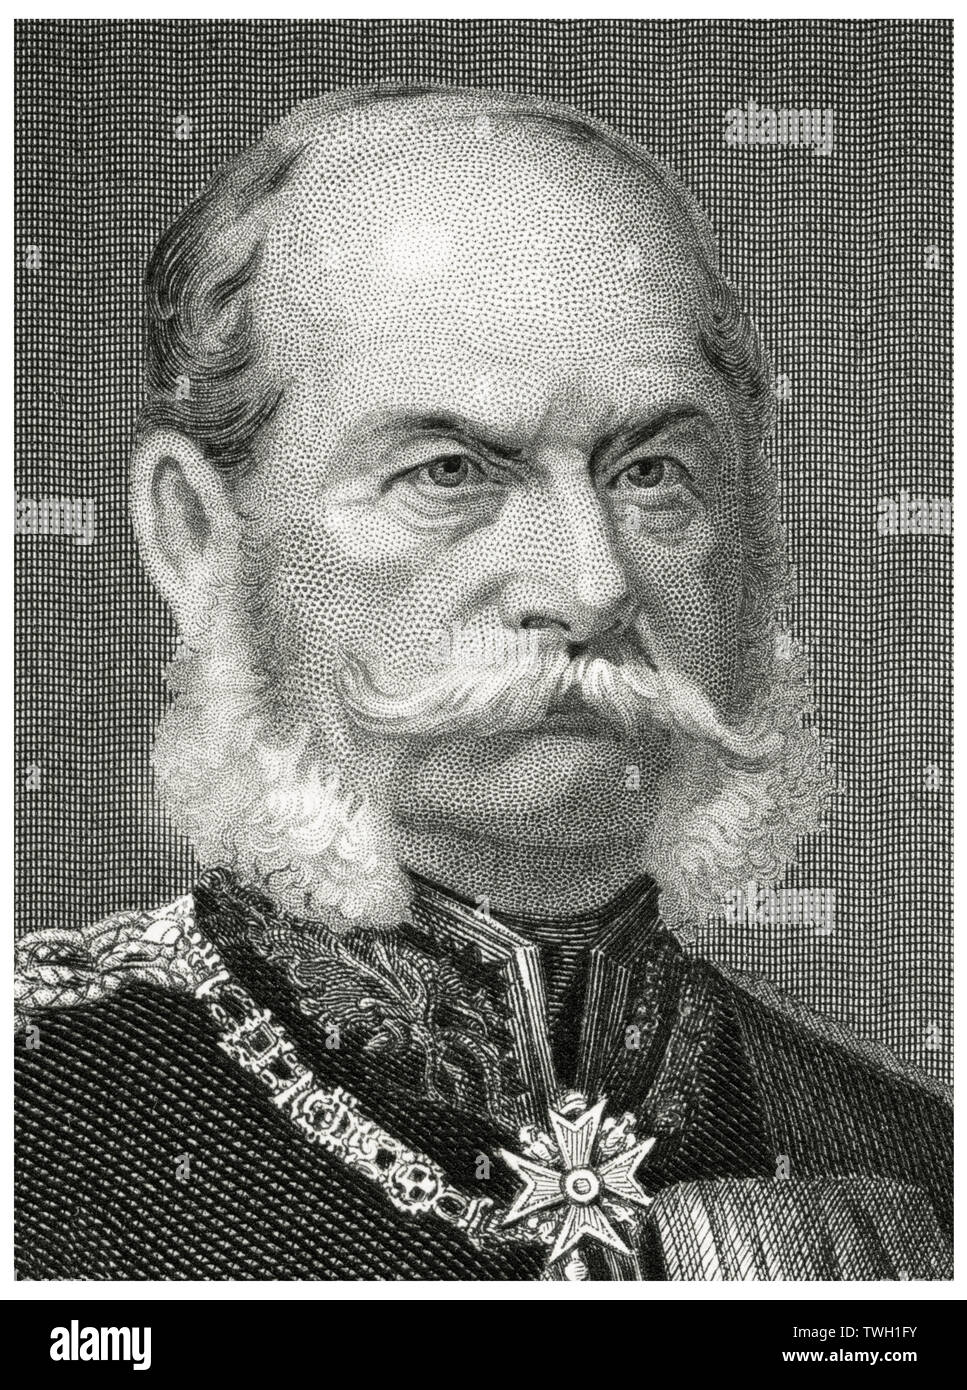 William I (1797-1888), Emperor of Germany 1871-88, Head and Shoulders Portrait, Steel Engraving, Portrait Gallery of Eminent Men and Women of Europe and America by Evert A. Duyckinck, Published by Henry J. Johnson, Johnson, Wilson & Company, New York, 1873 - Stock Image